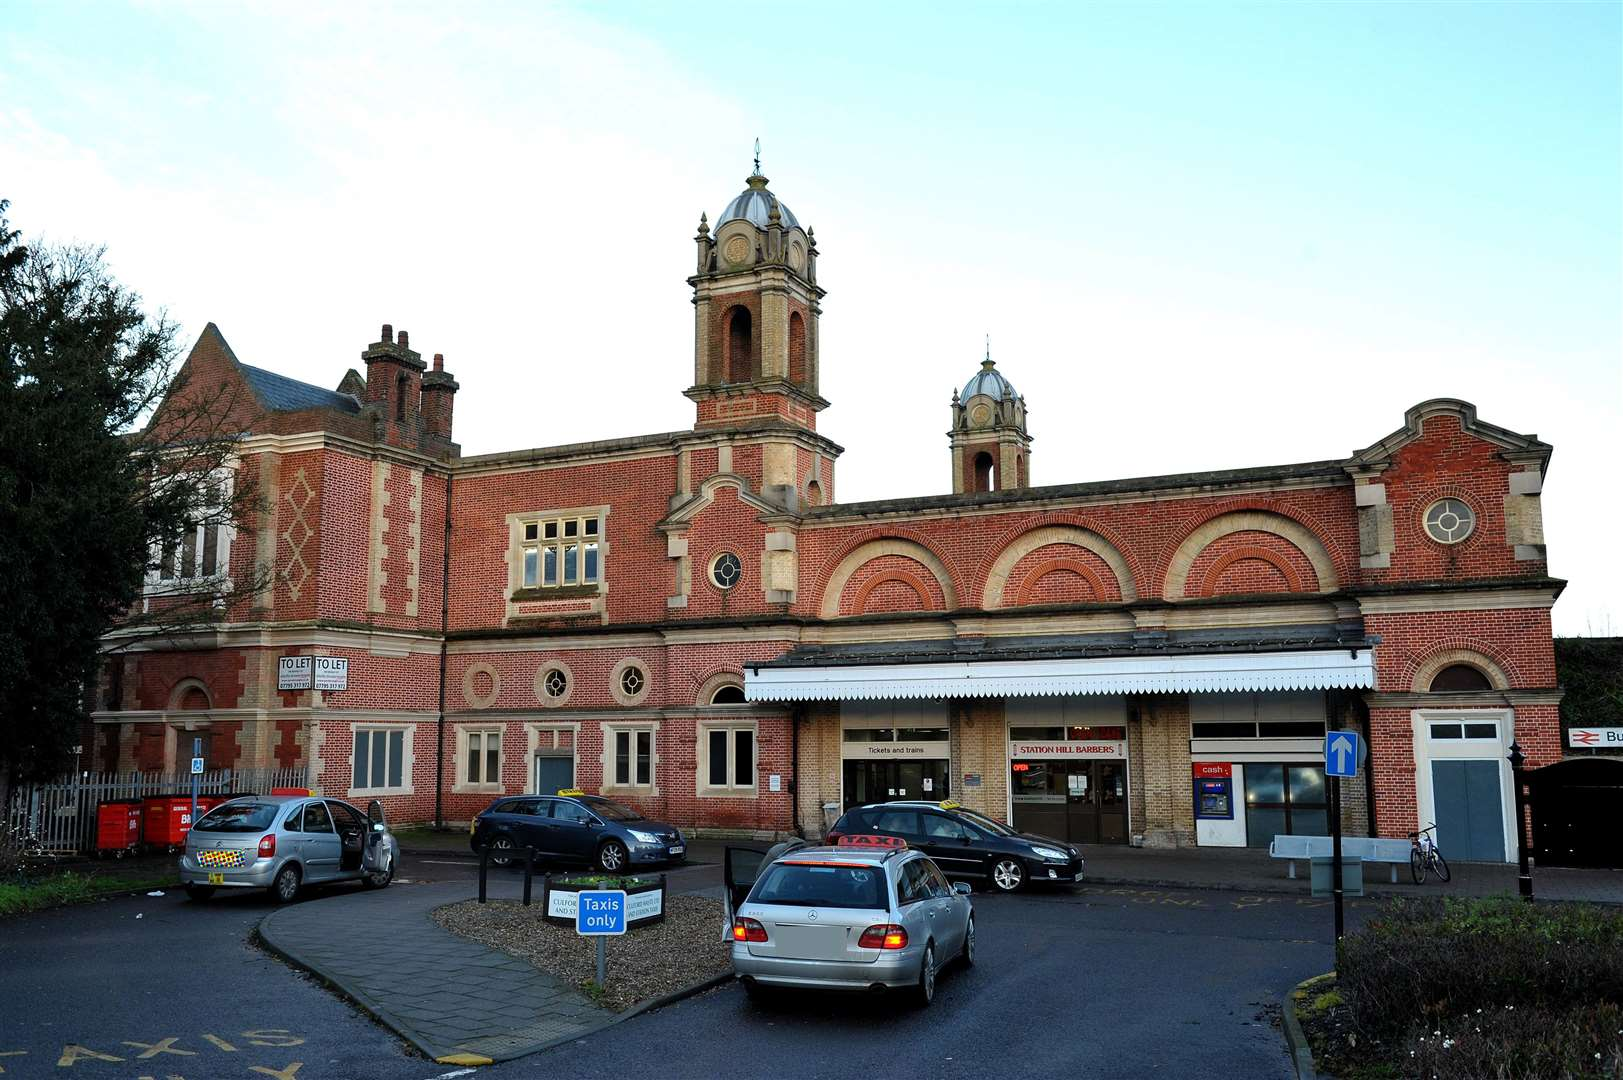 A Fordham man has been charged with possession of a machete at Bury St Edmunds railway station on Thursday.